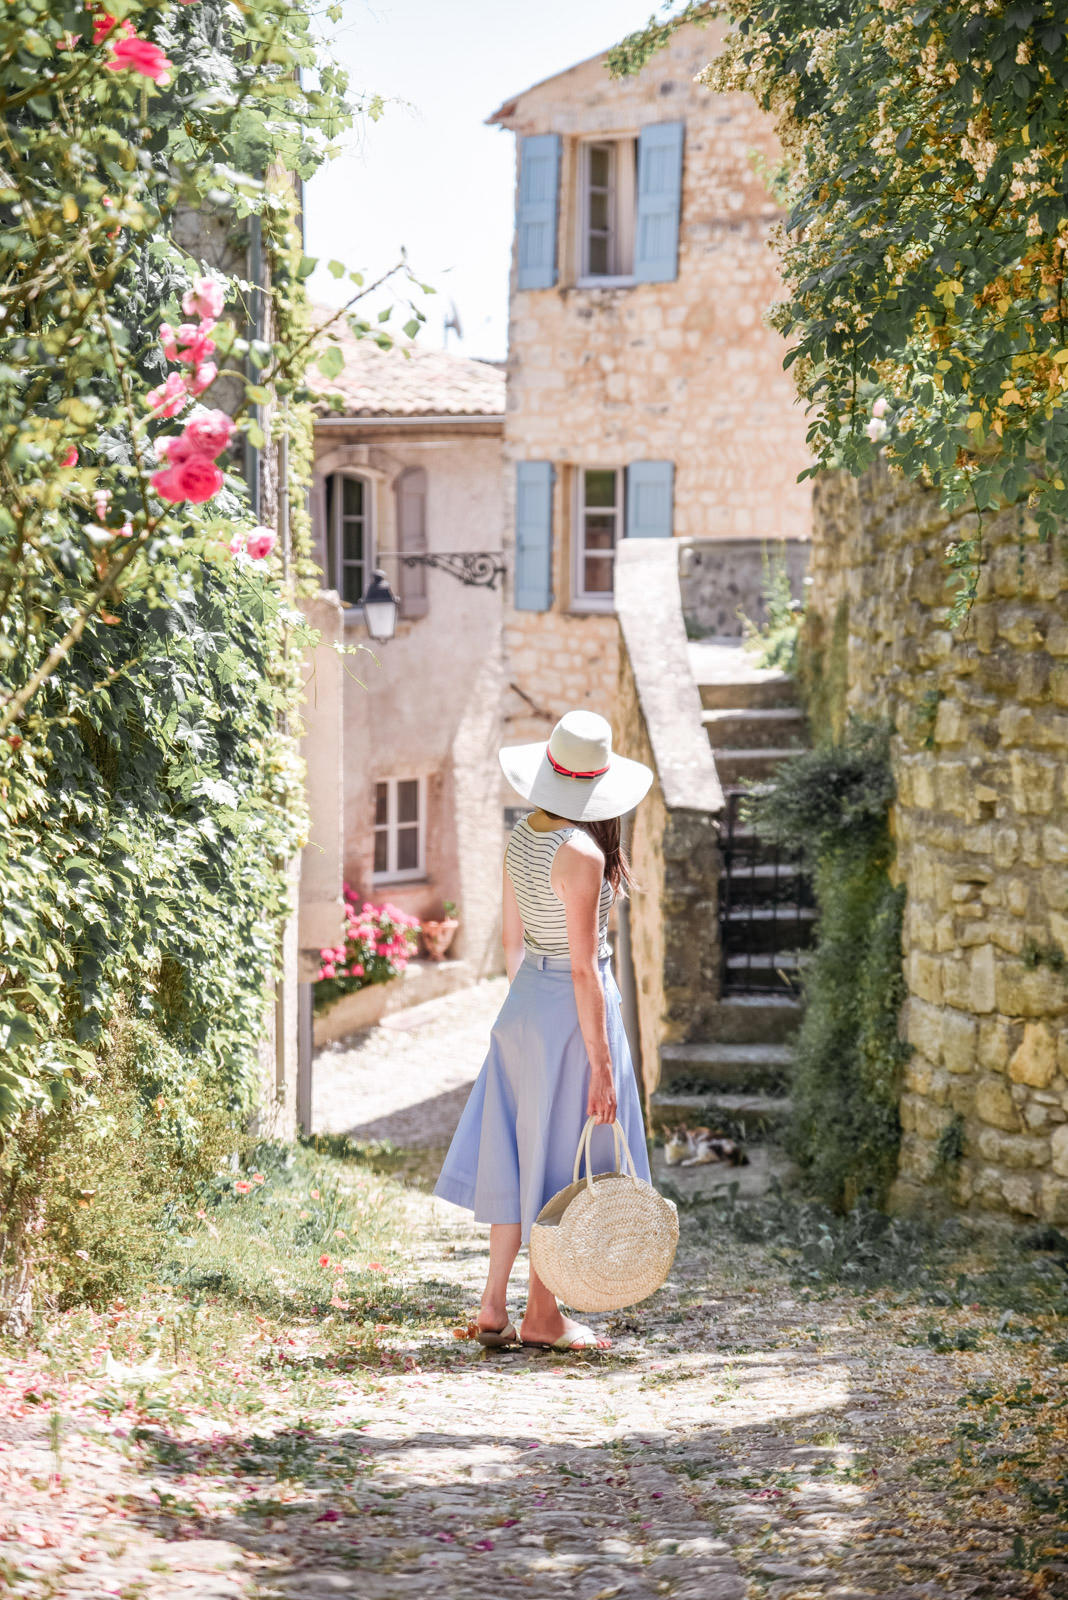 Blog-Mode-And-The-City-Lifestyle-Provence-Couvent-Minimes-Manosque-Fourcalquier-23